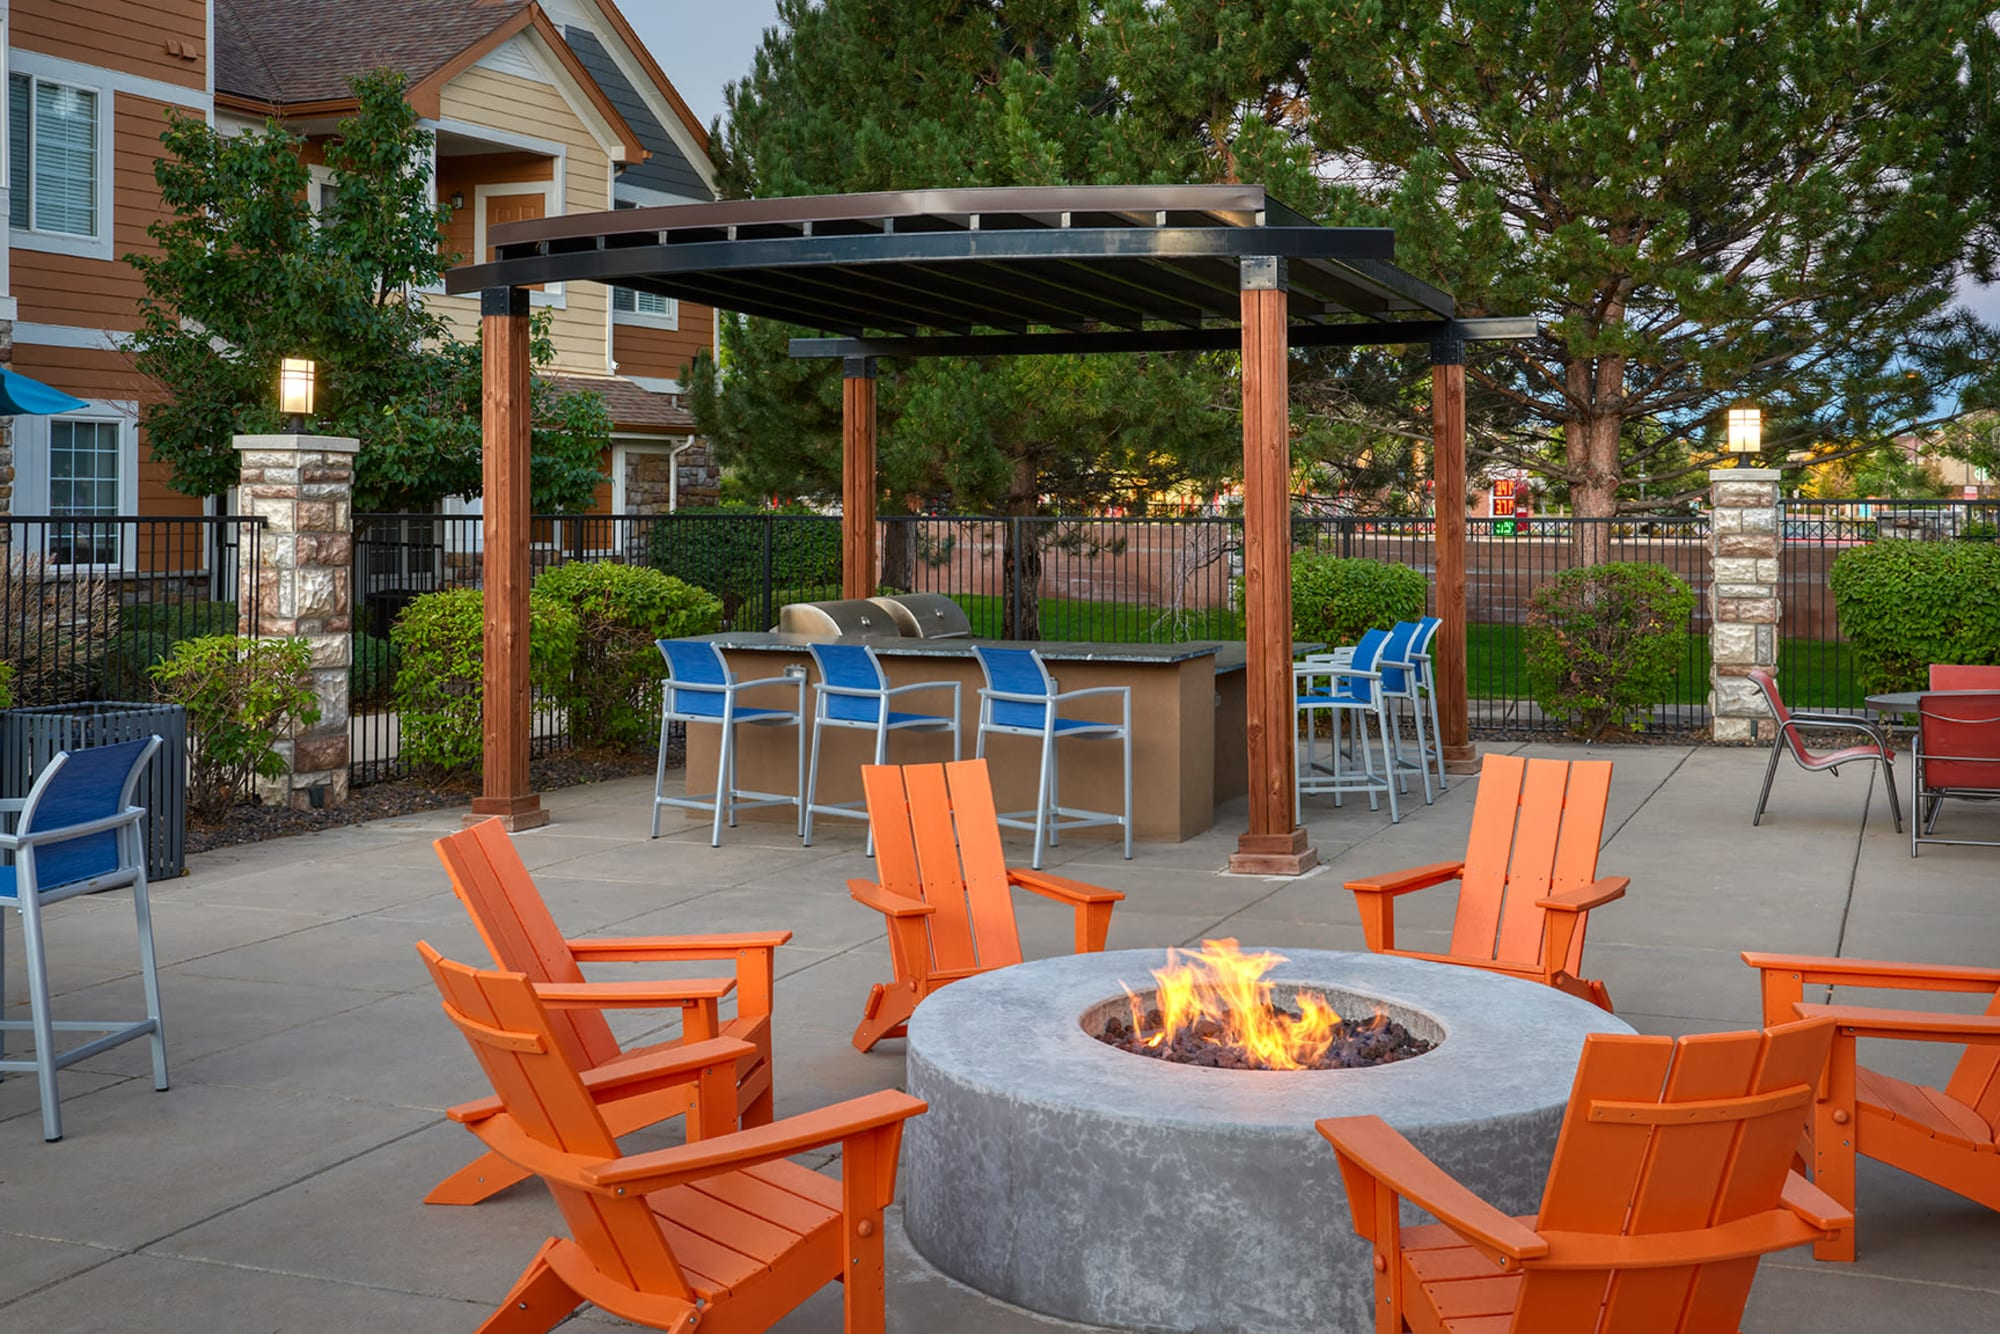 Fire Pit and Covered BBQ at Crestone Apartments in Aurora, Colorado